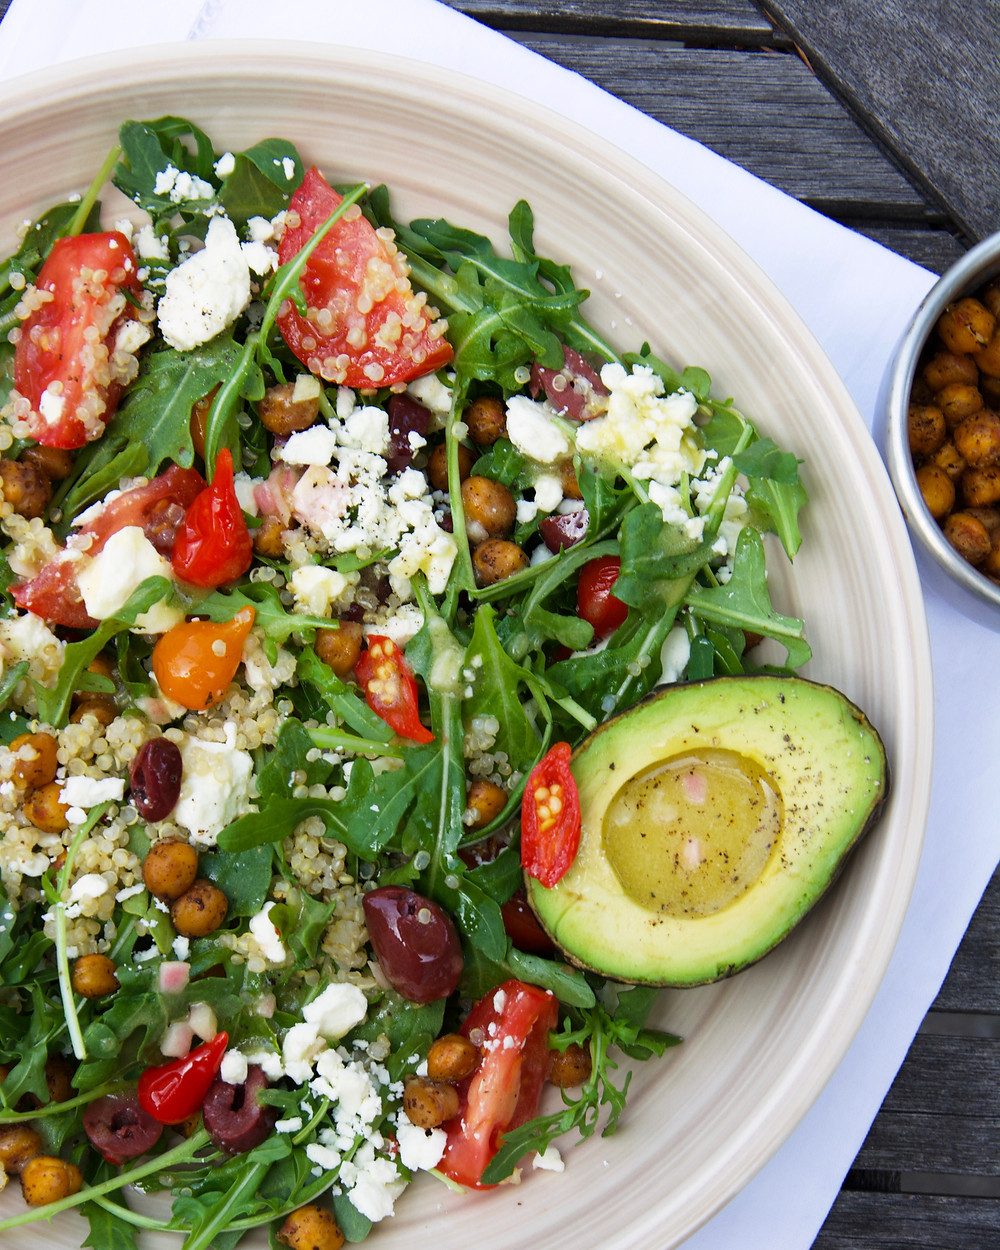 A bright salad with Mediterranean influences with arugula, quinoa, tomatoes, olives, pepper drops and avocado.